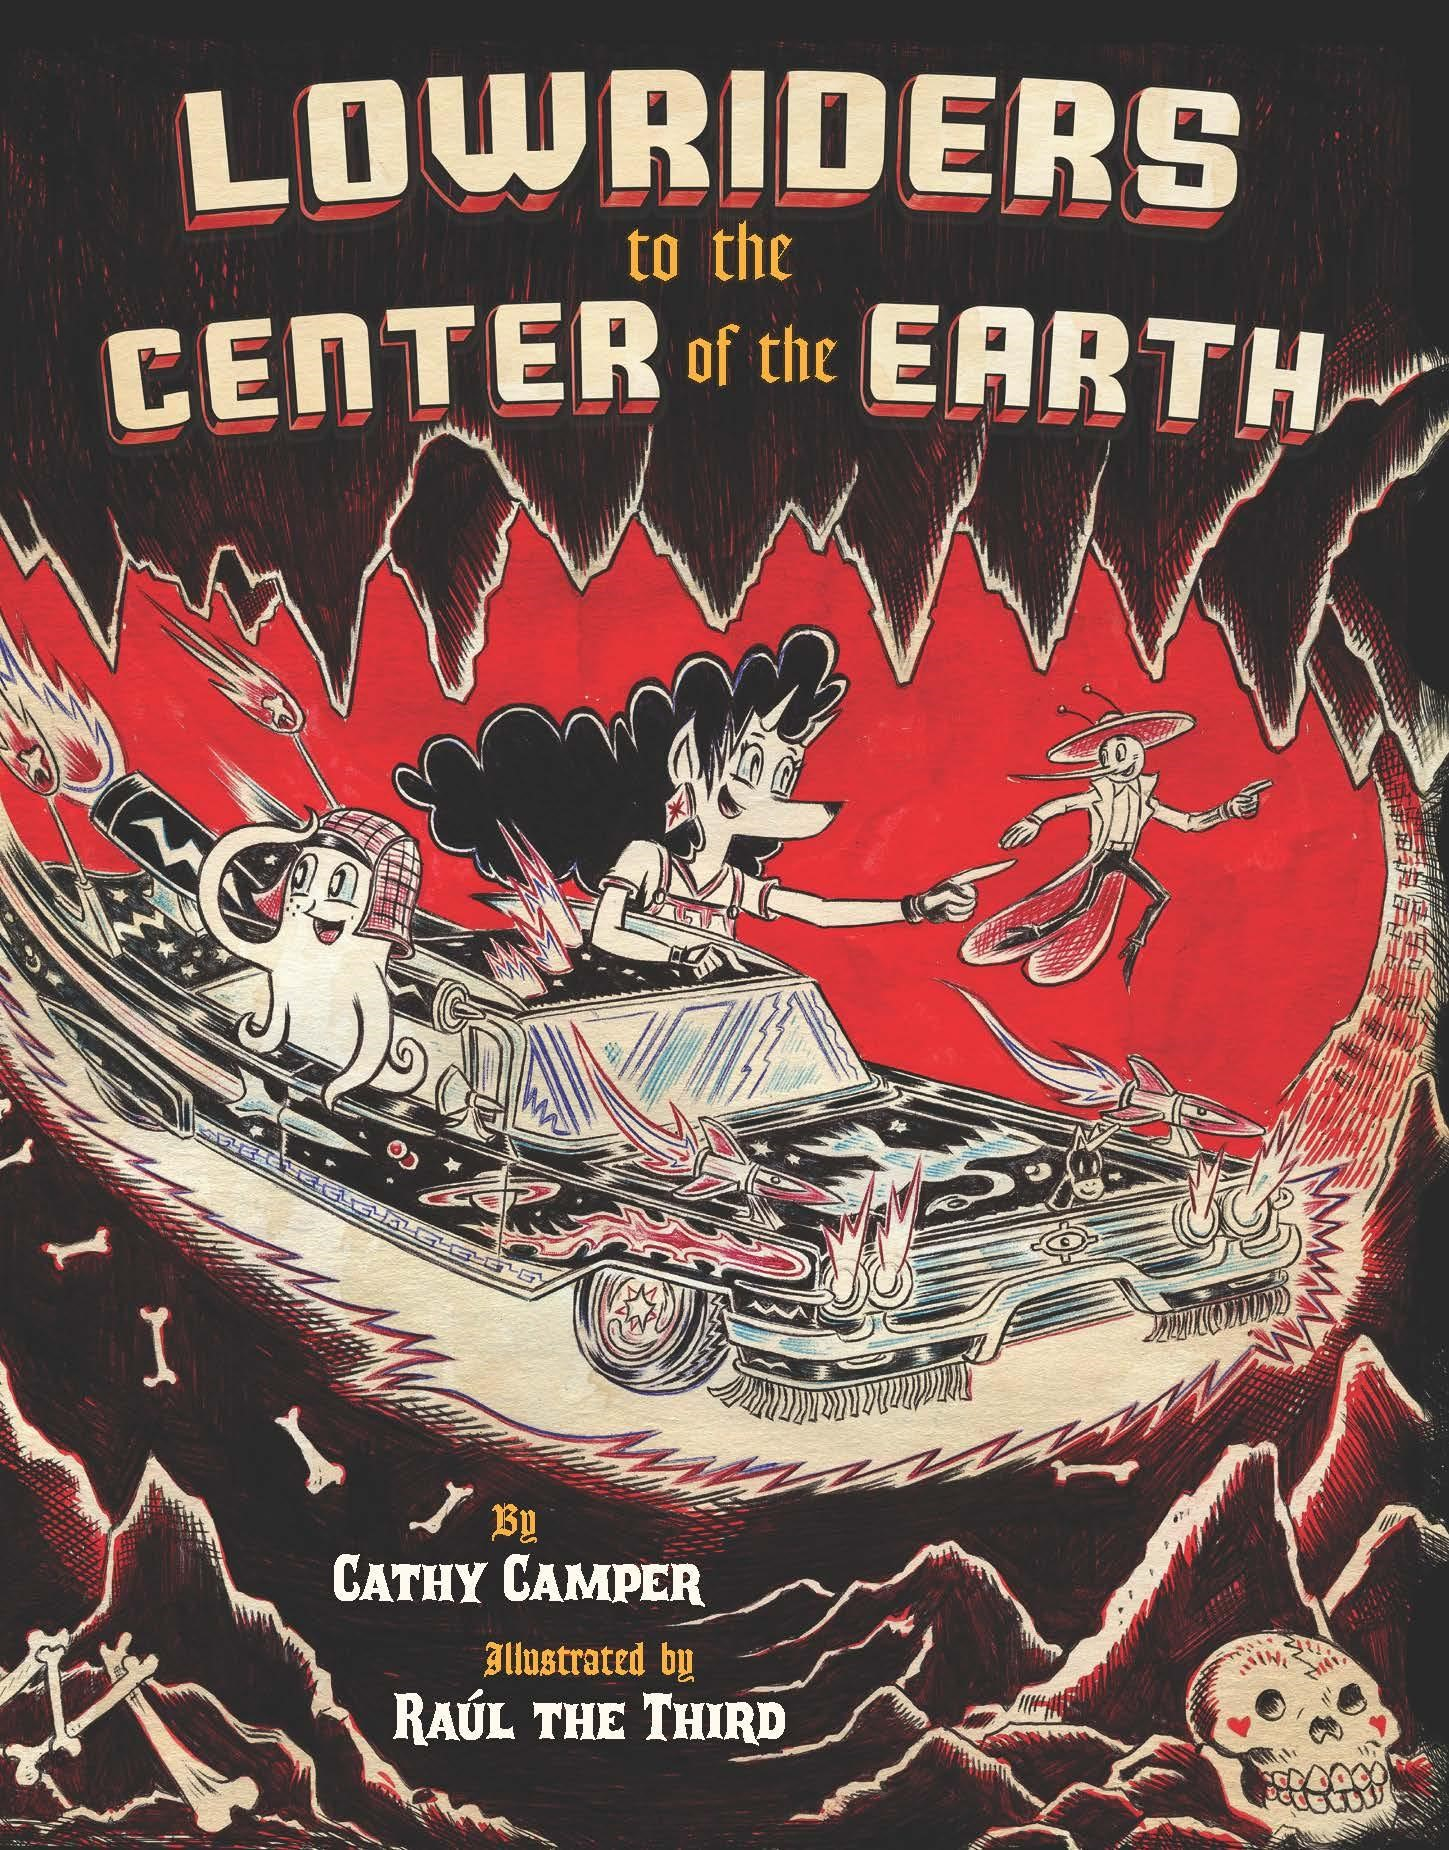 Lowriders to the Center of the Earth cover